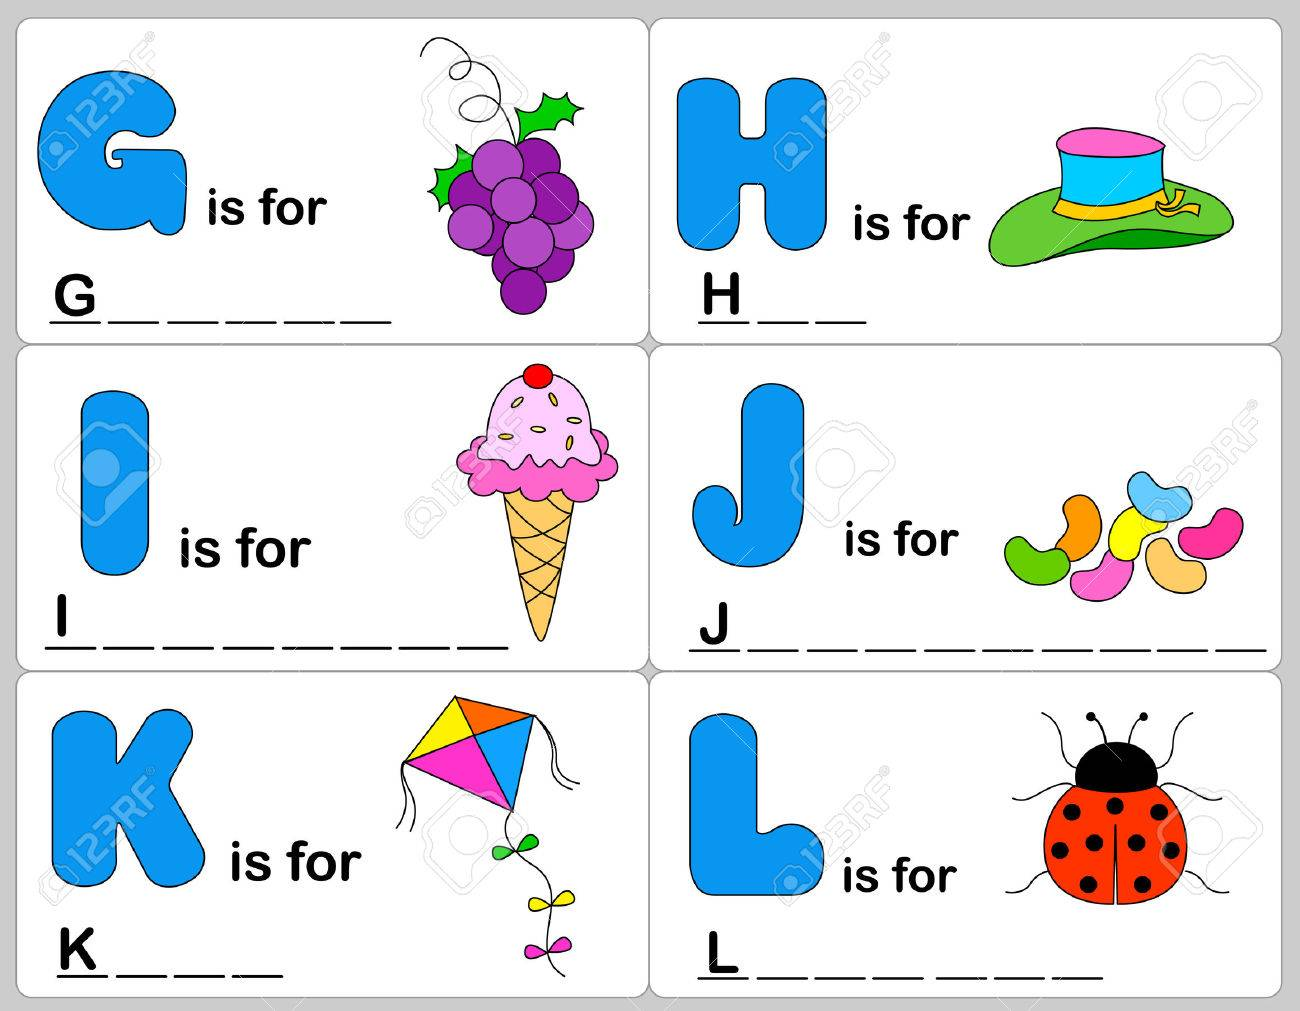 Workbooks simple fill in the blank worksheets : Kids Words Learning Game / Worksheets With Simple Colorful ...